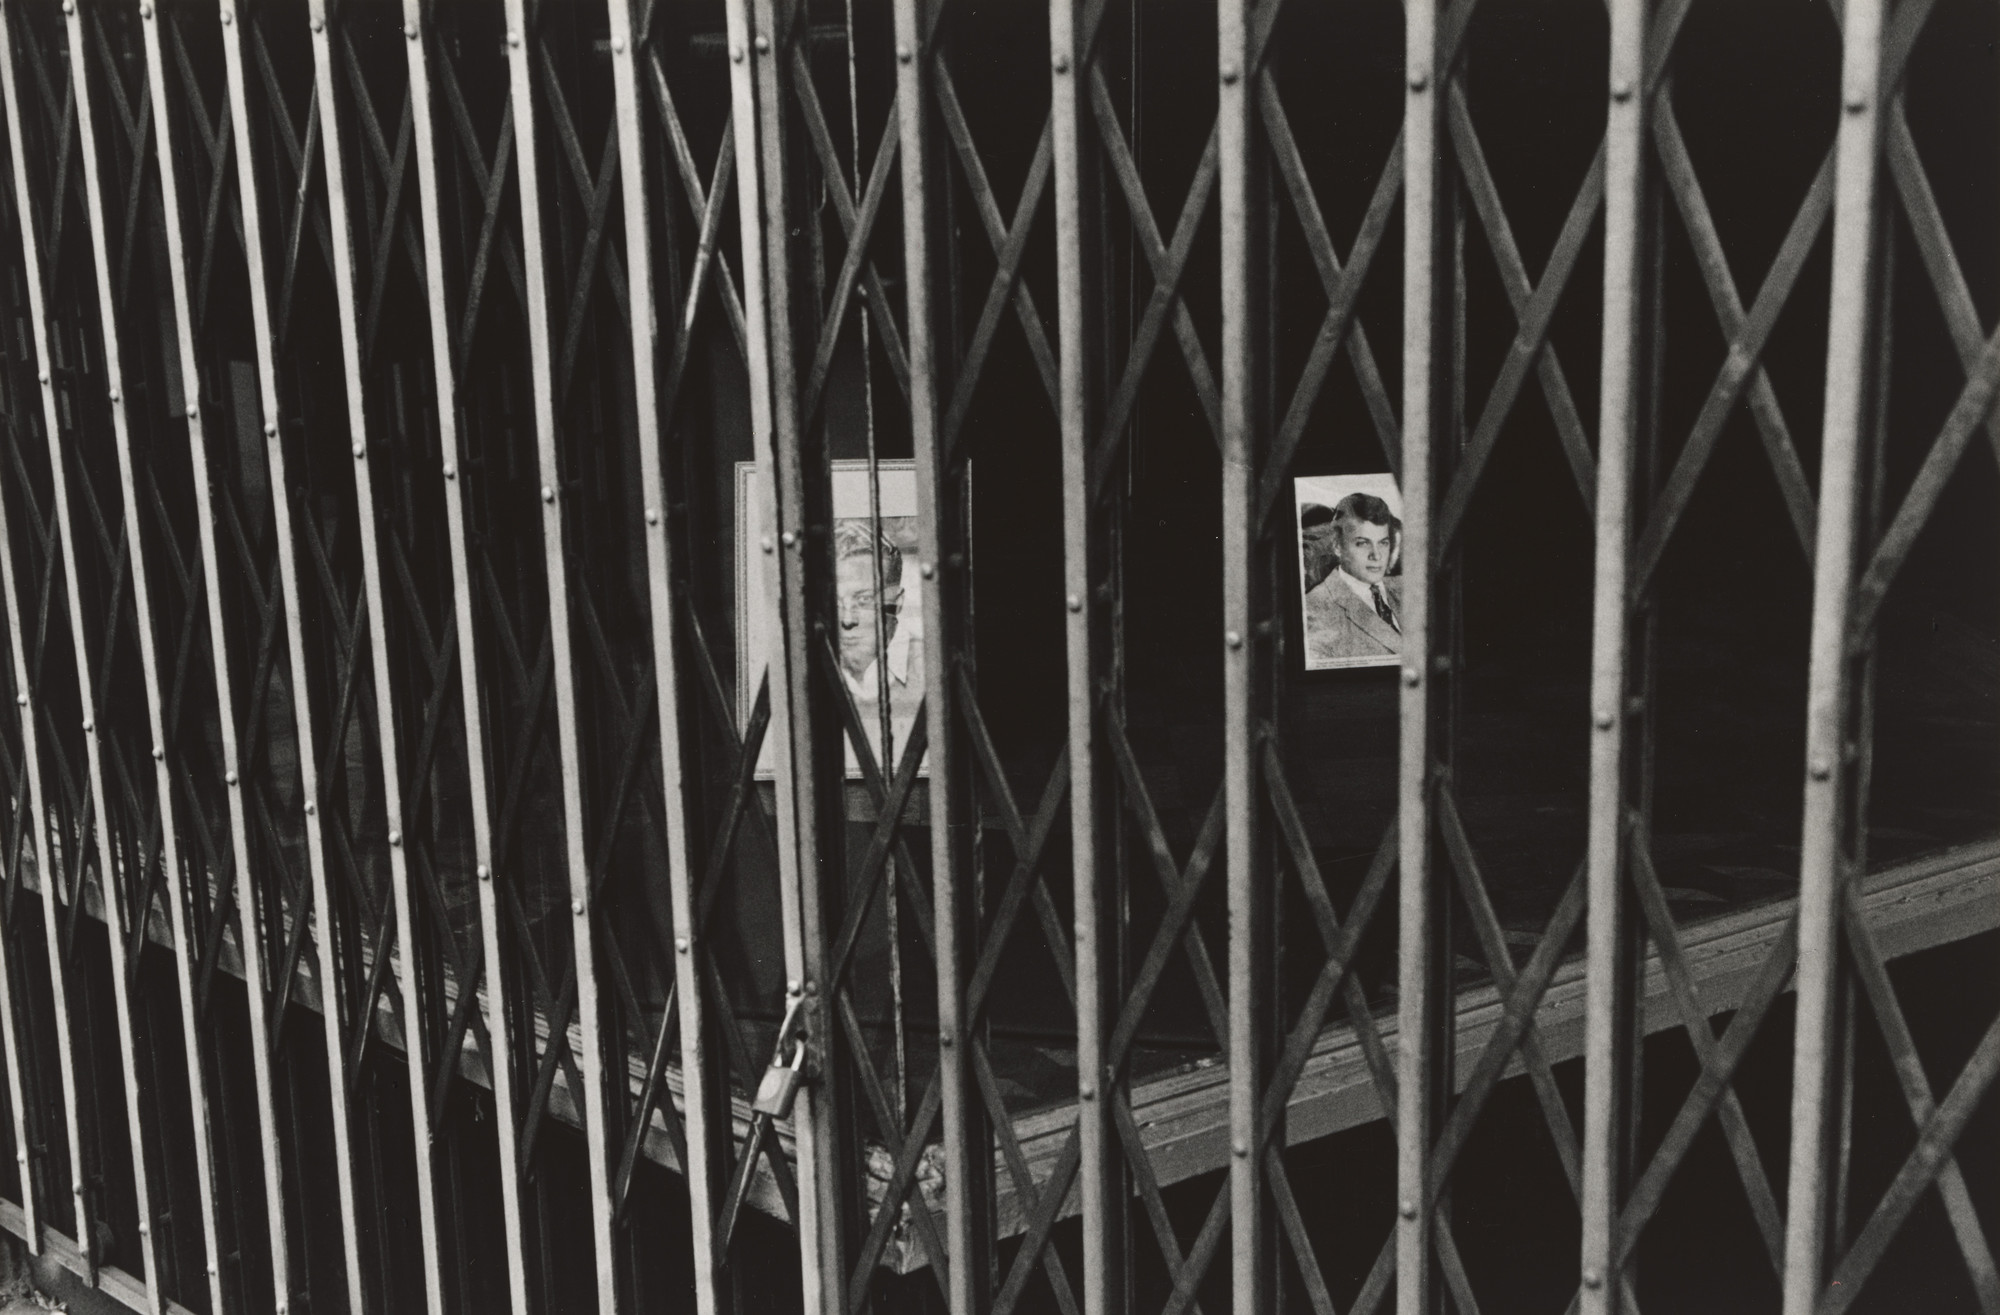 Lee Friedlander. New York City. 1962